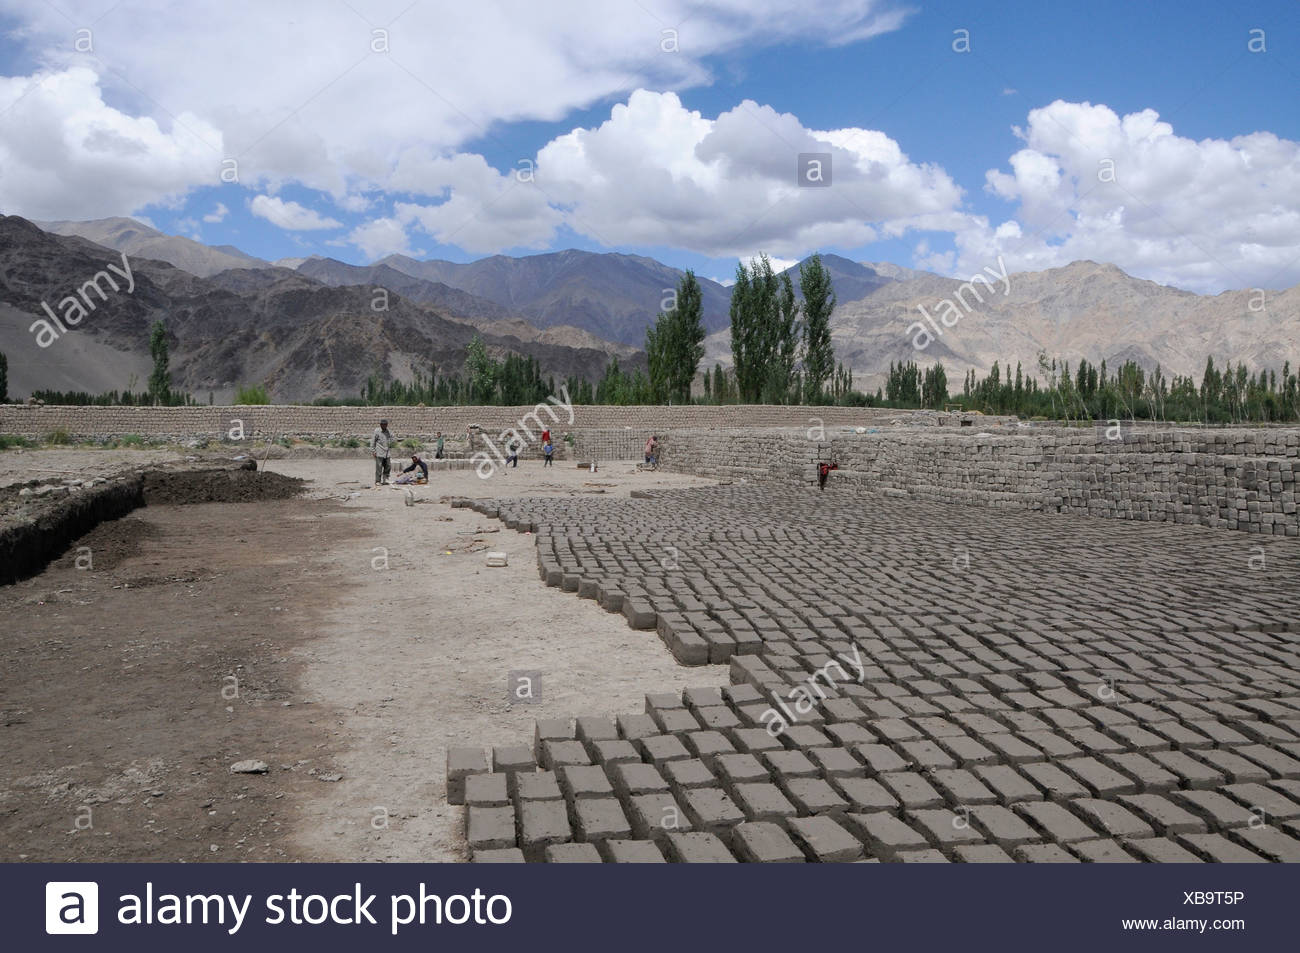 Brickyard which manufactures air-dried clay bricks in the Indus valley, Traktok, Ladakh, India, Himalayas, Asia - Stock Image